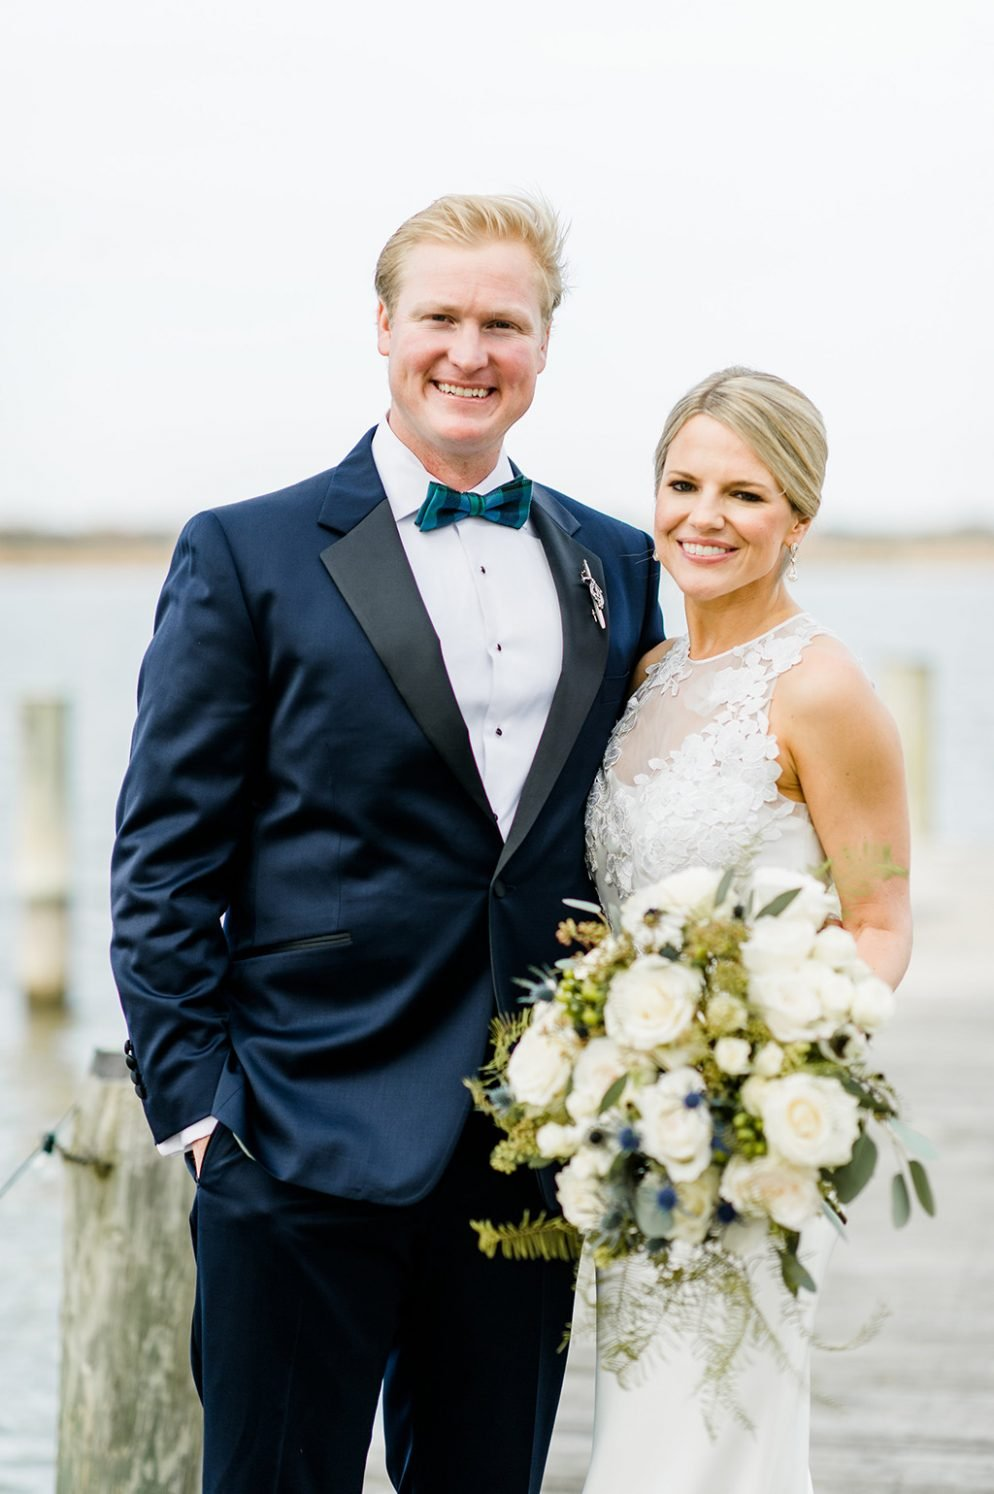 Lane-Earnest-Parker-McKee-Caroline-Lima-Photography-CarolineLimaPhotography_Lane_Parker_Wedding_2017_07-994x1494